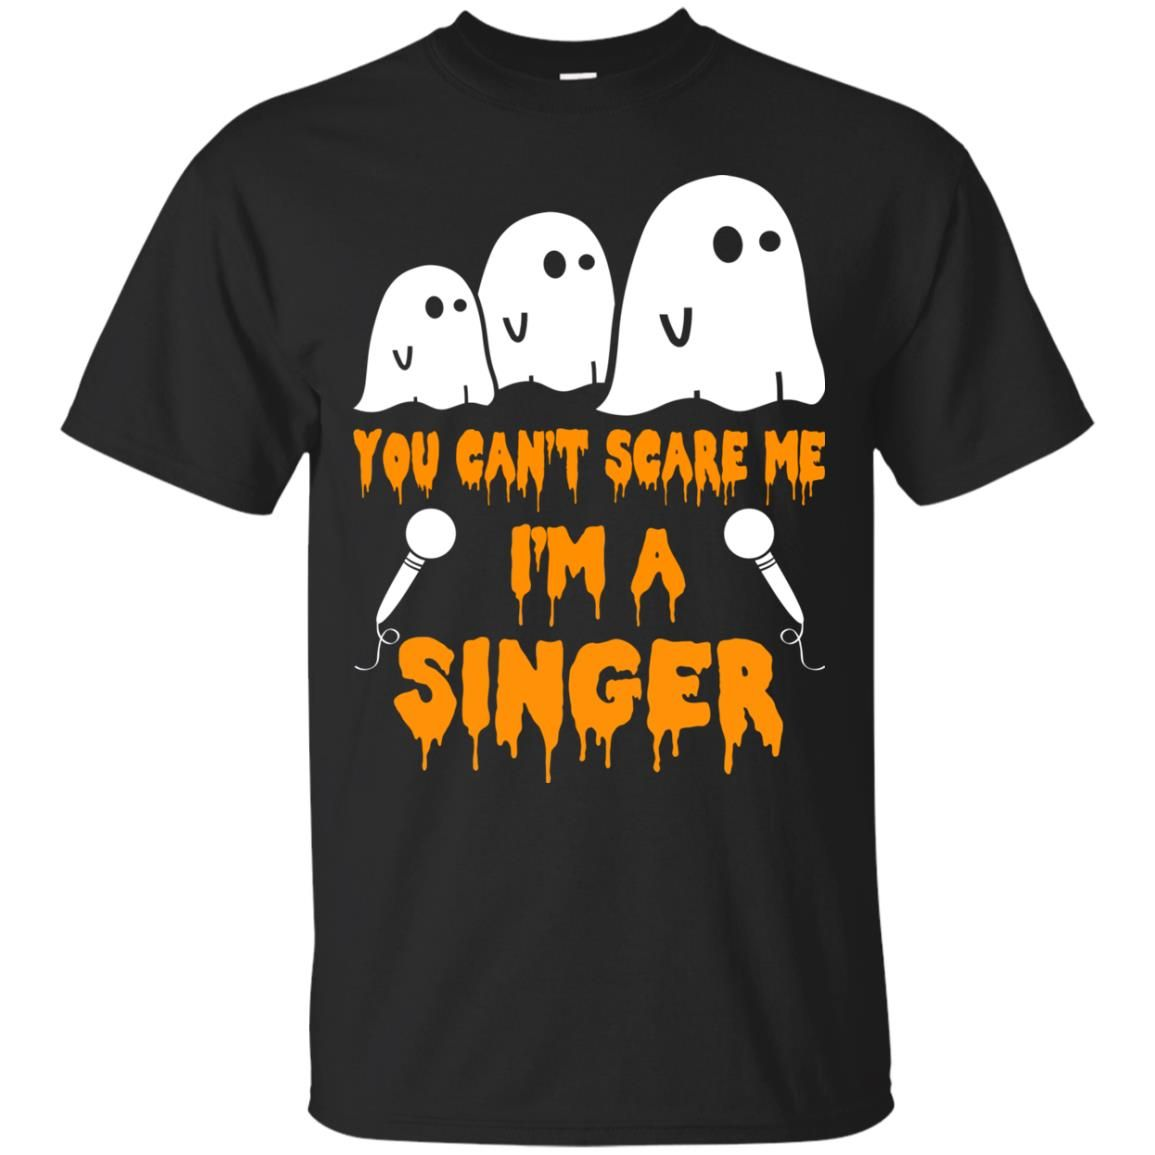 image 566 - You can't scare me I'm a Singer shirt, hoodie, tank